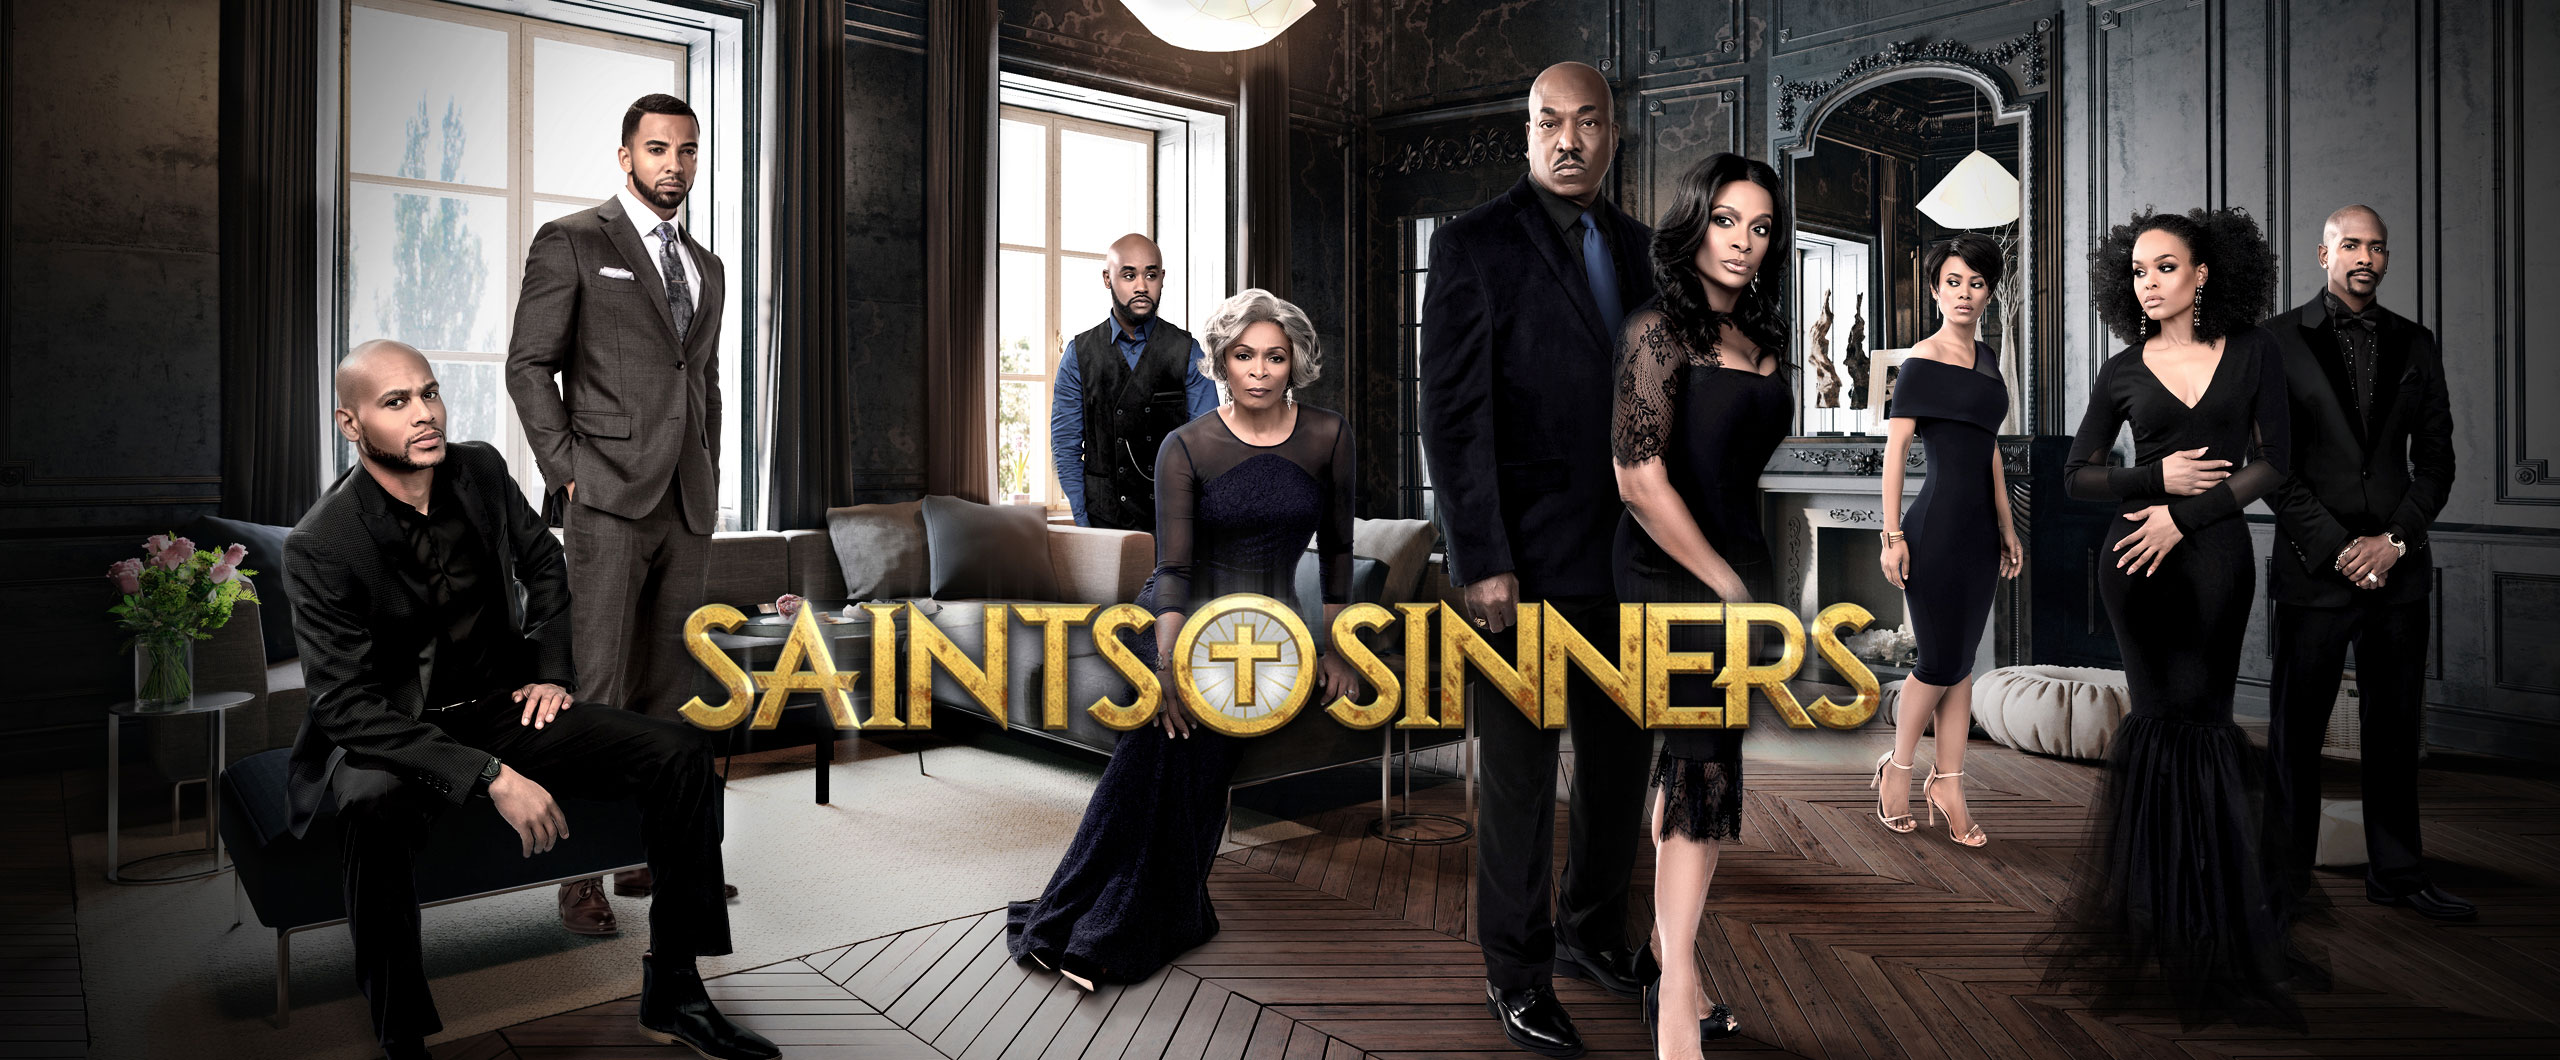 Saints & Sinners All New Episode  April 22  9/8c - Web Slider